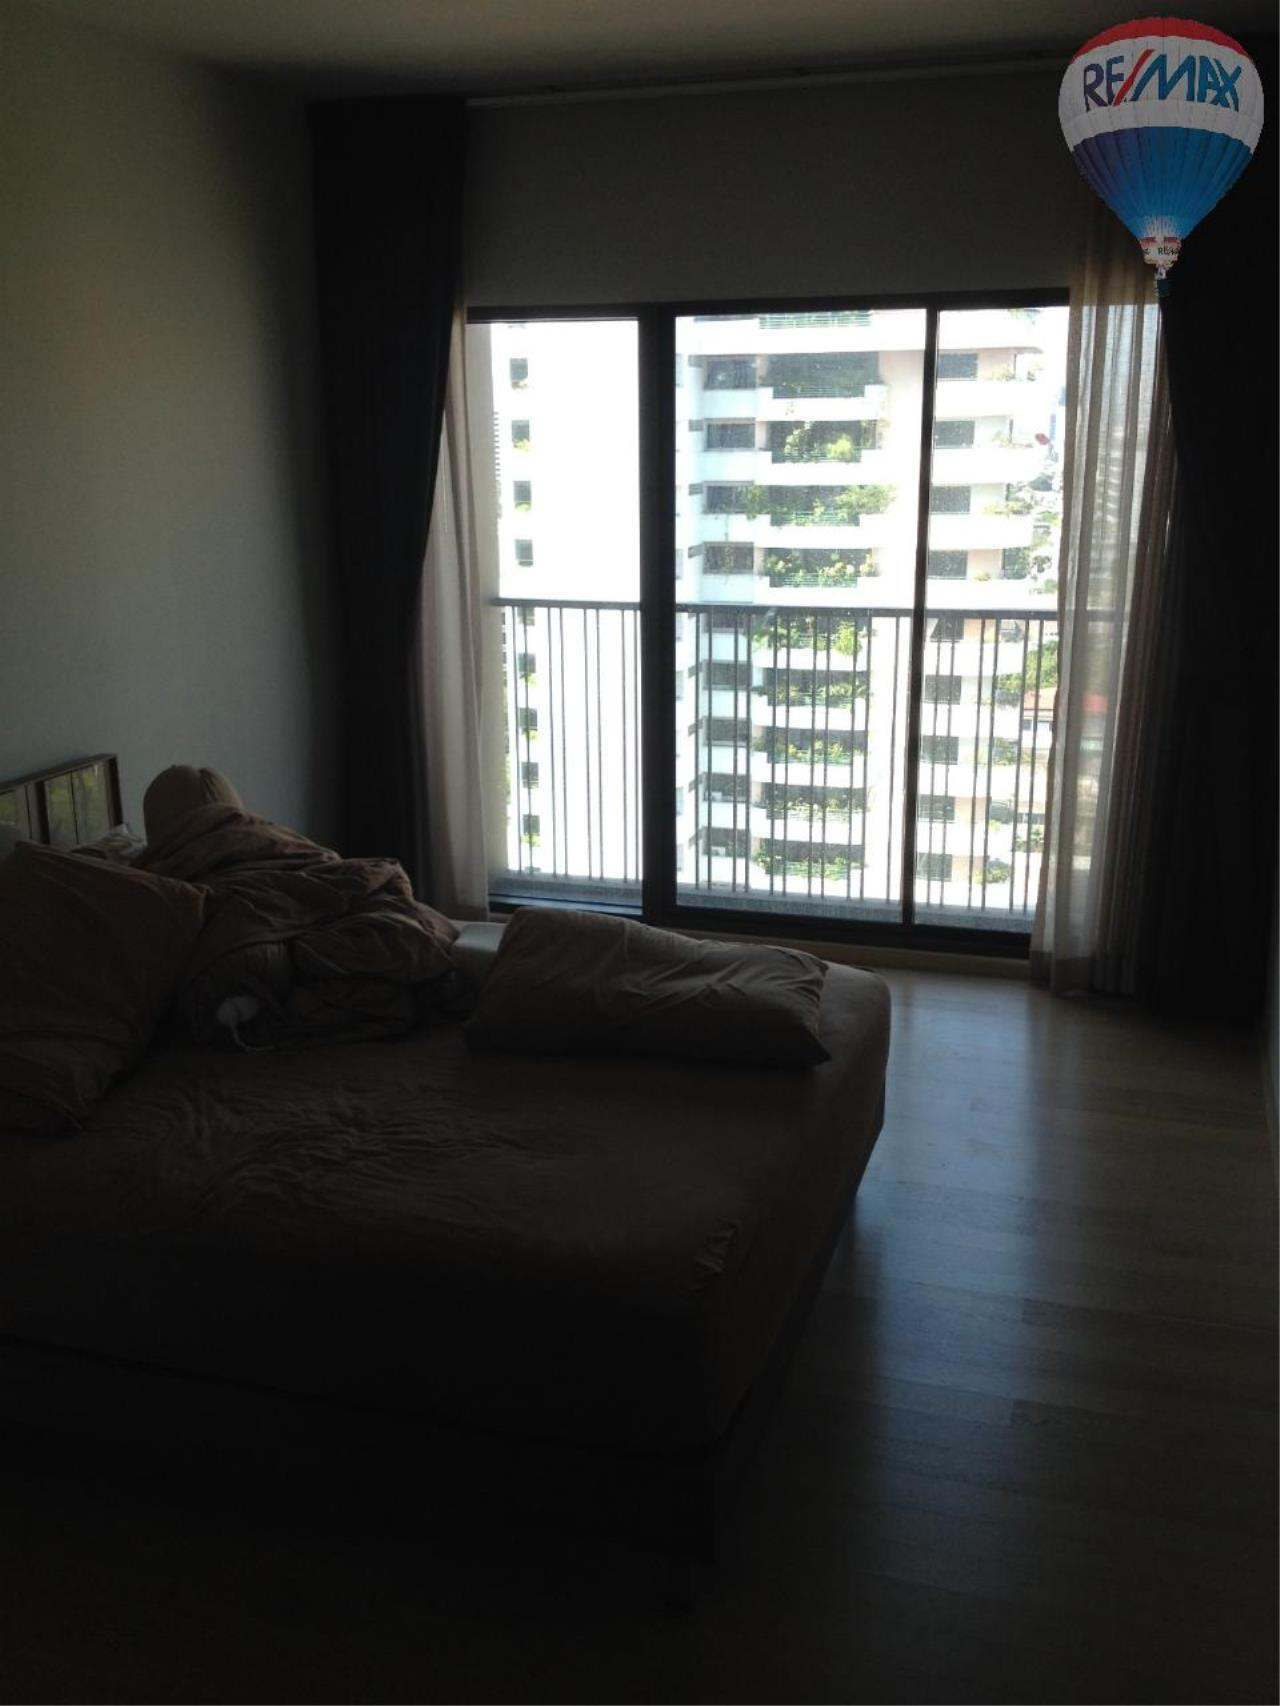 RE/MAX Properties Agency's Noble Refine for Rent 52 sqm 7